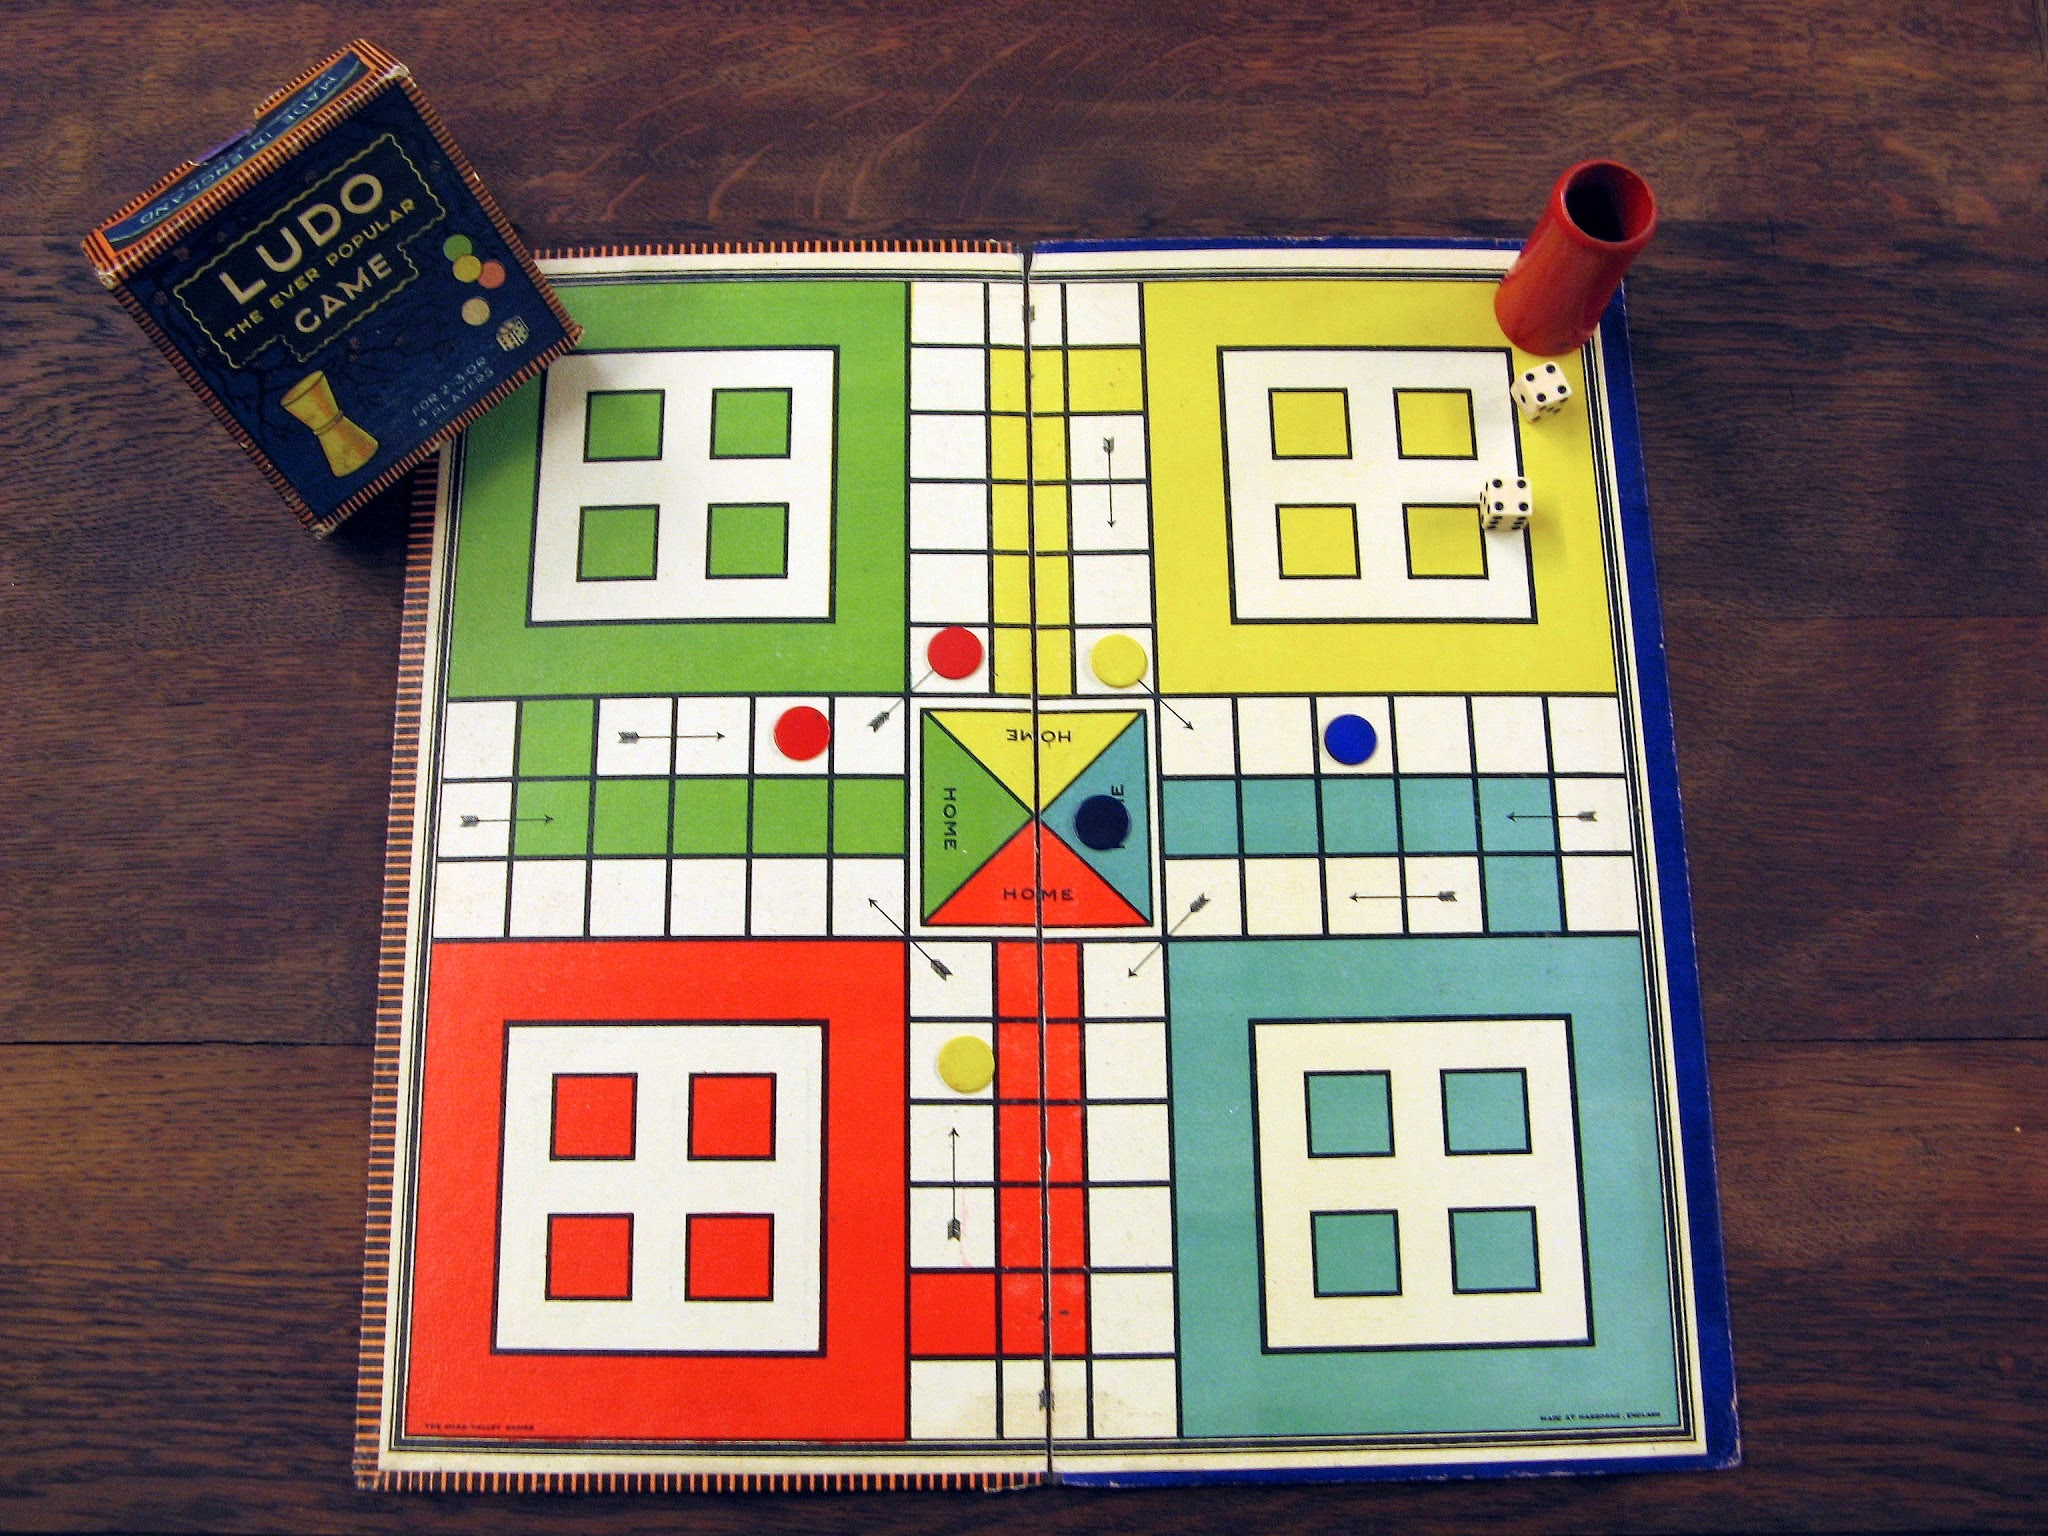 Ludo - Just one family-friendly Board Game you might play at Kawartha Lakes Mums Family Games Night linked to Free image source